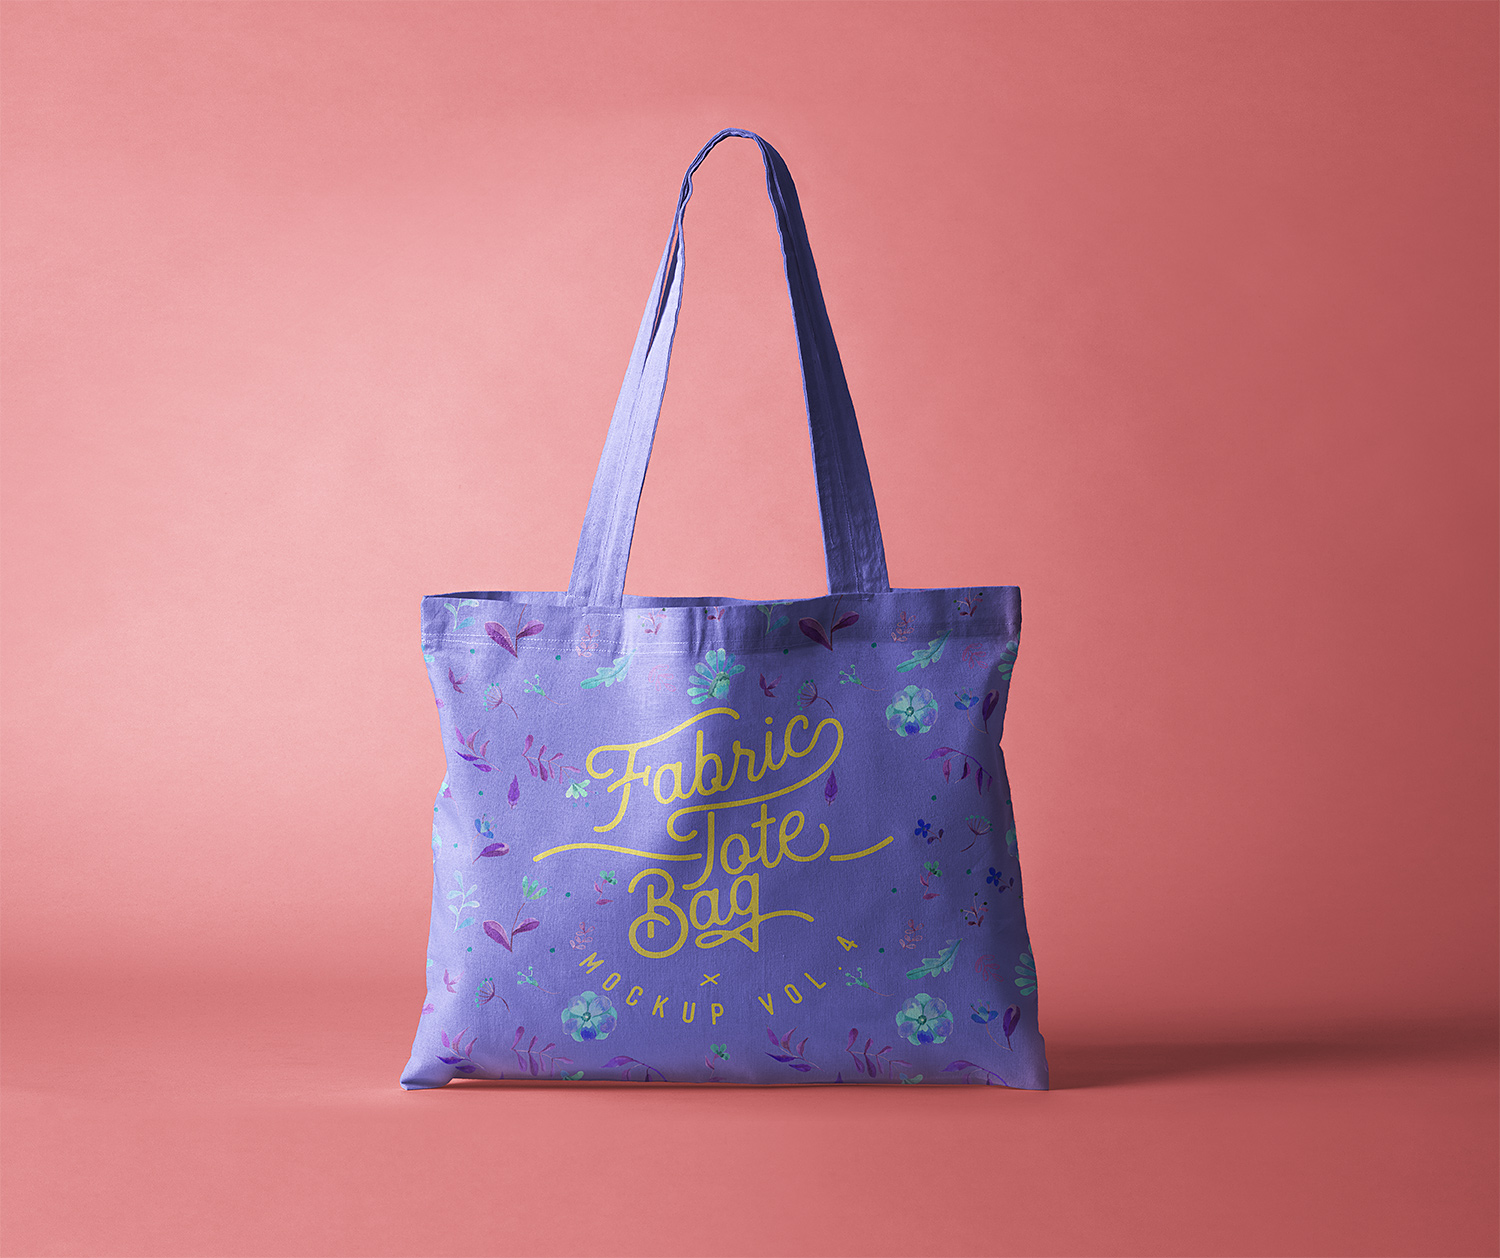 Tote Bag Fabric Mockup Free